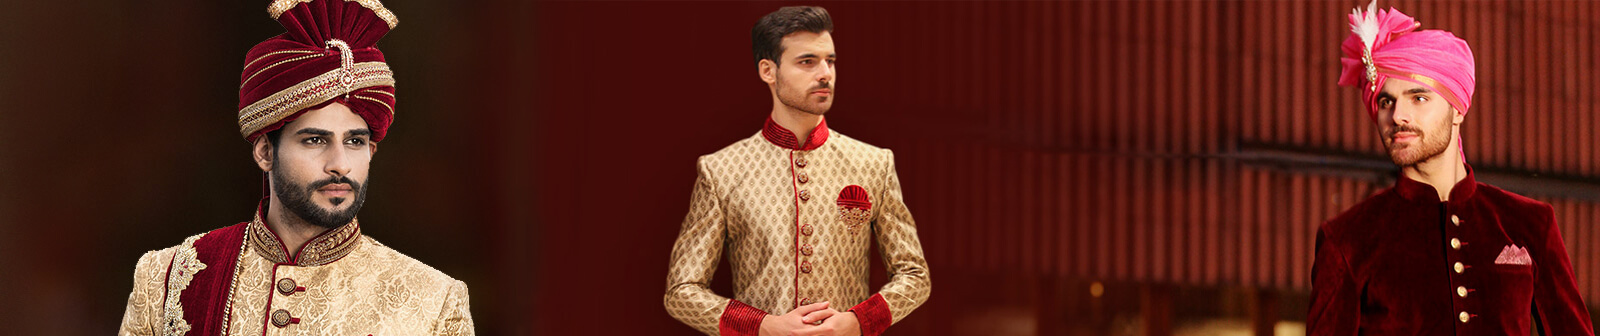 Groom Wedding Wear in Delhi